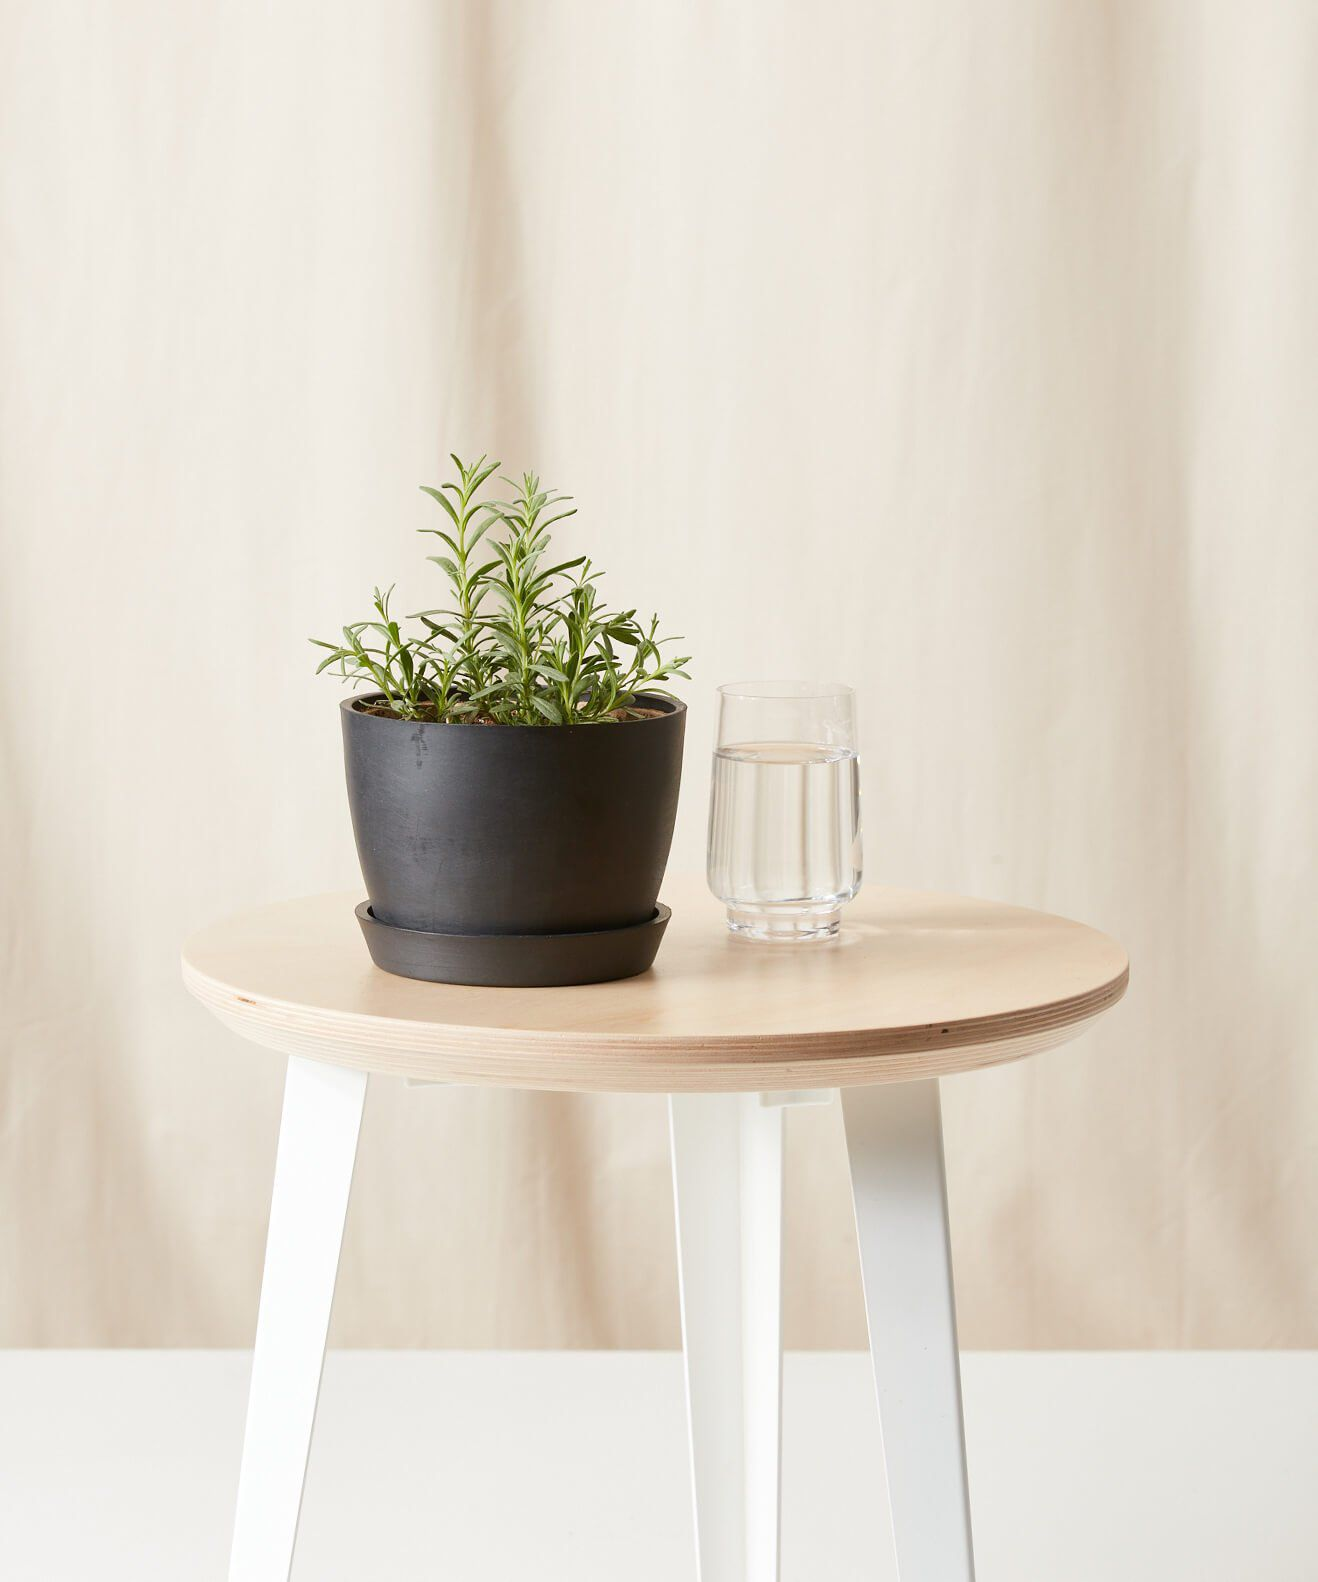 Lavender plant in charcoal pot on a wood stool next to a glass of water